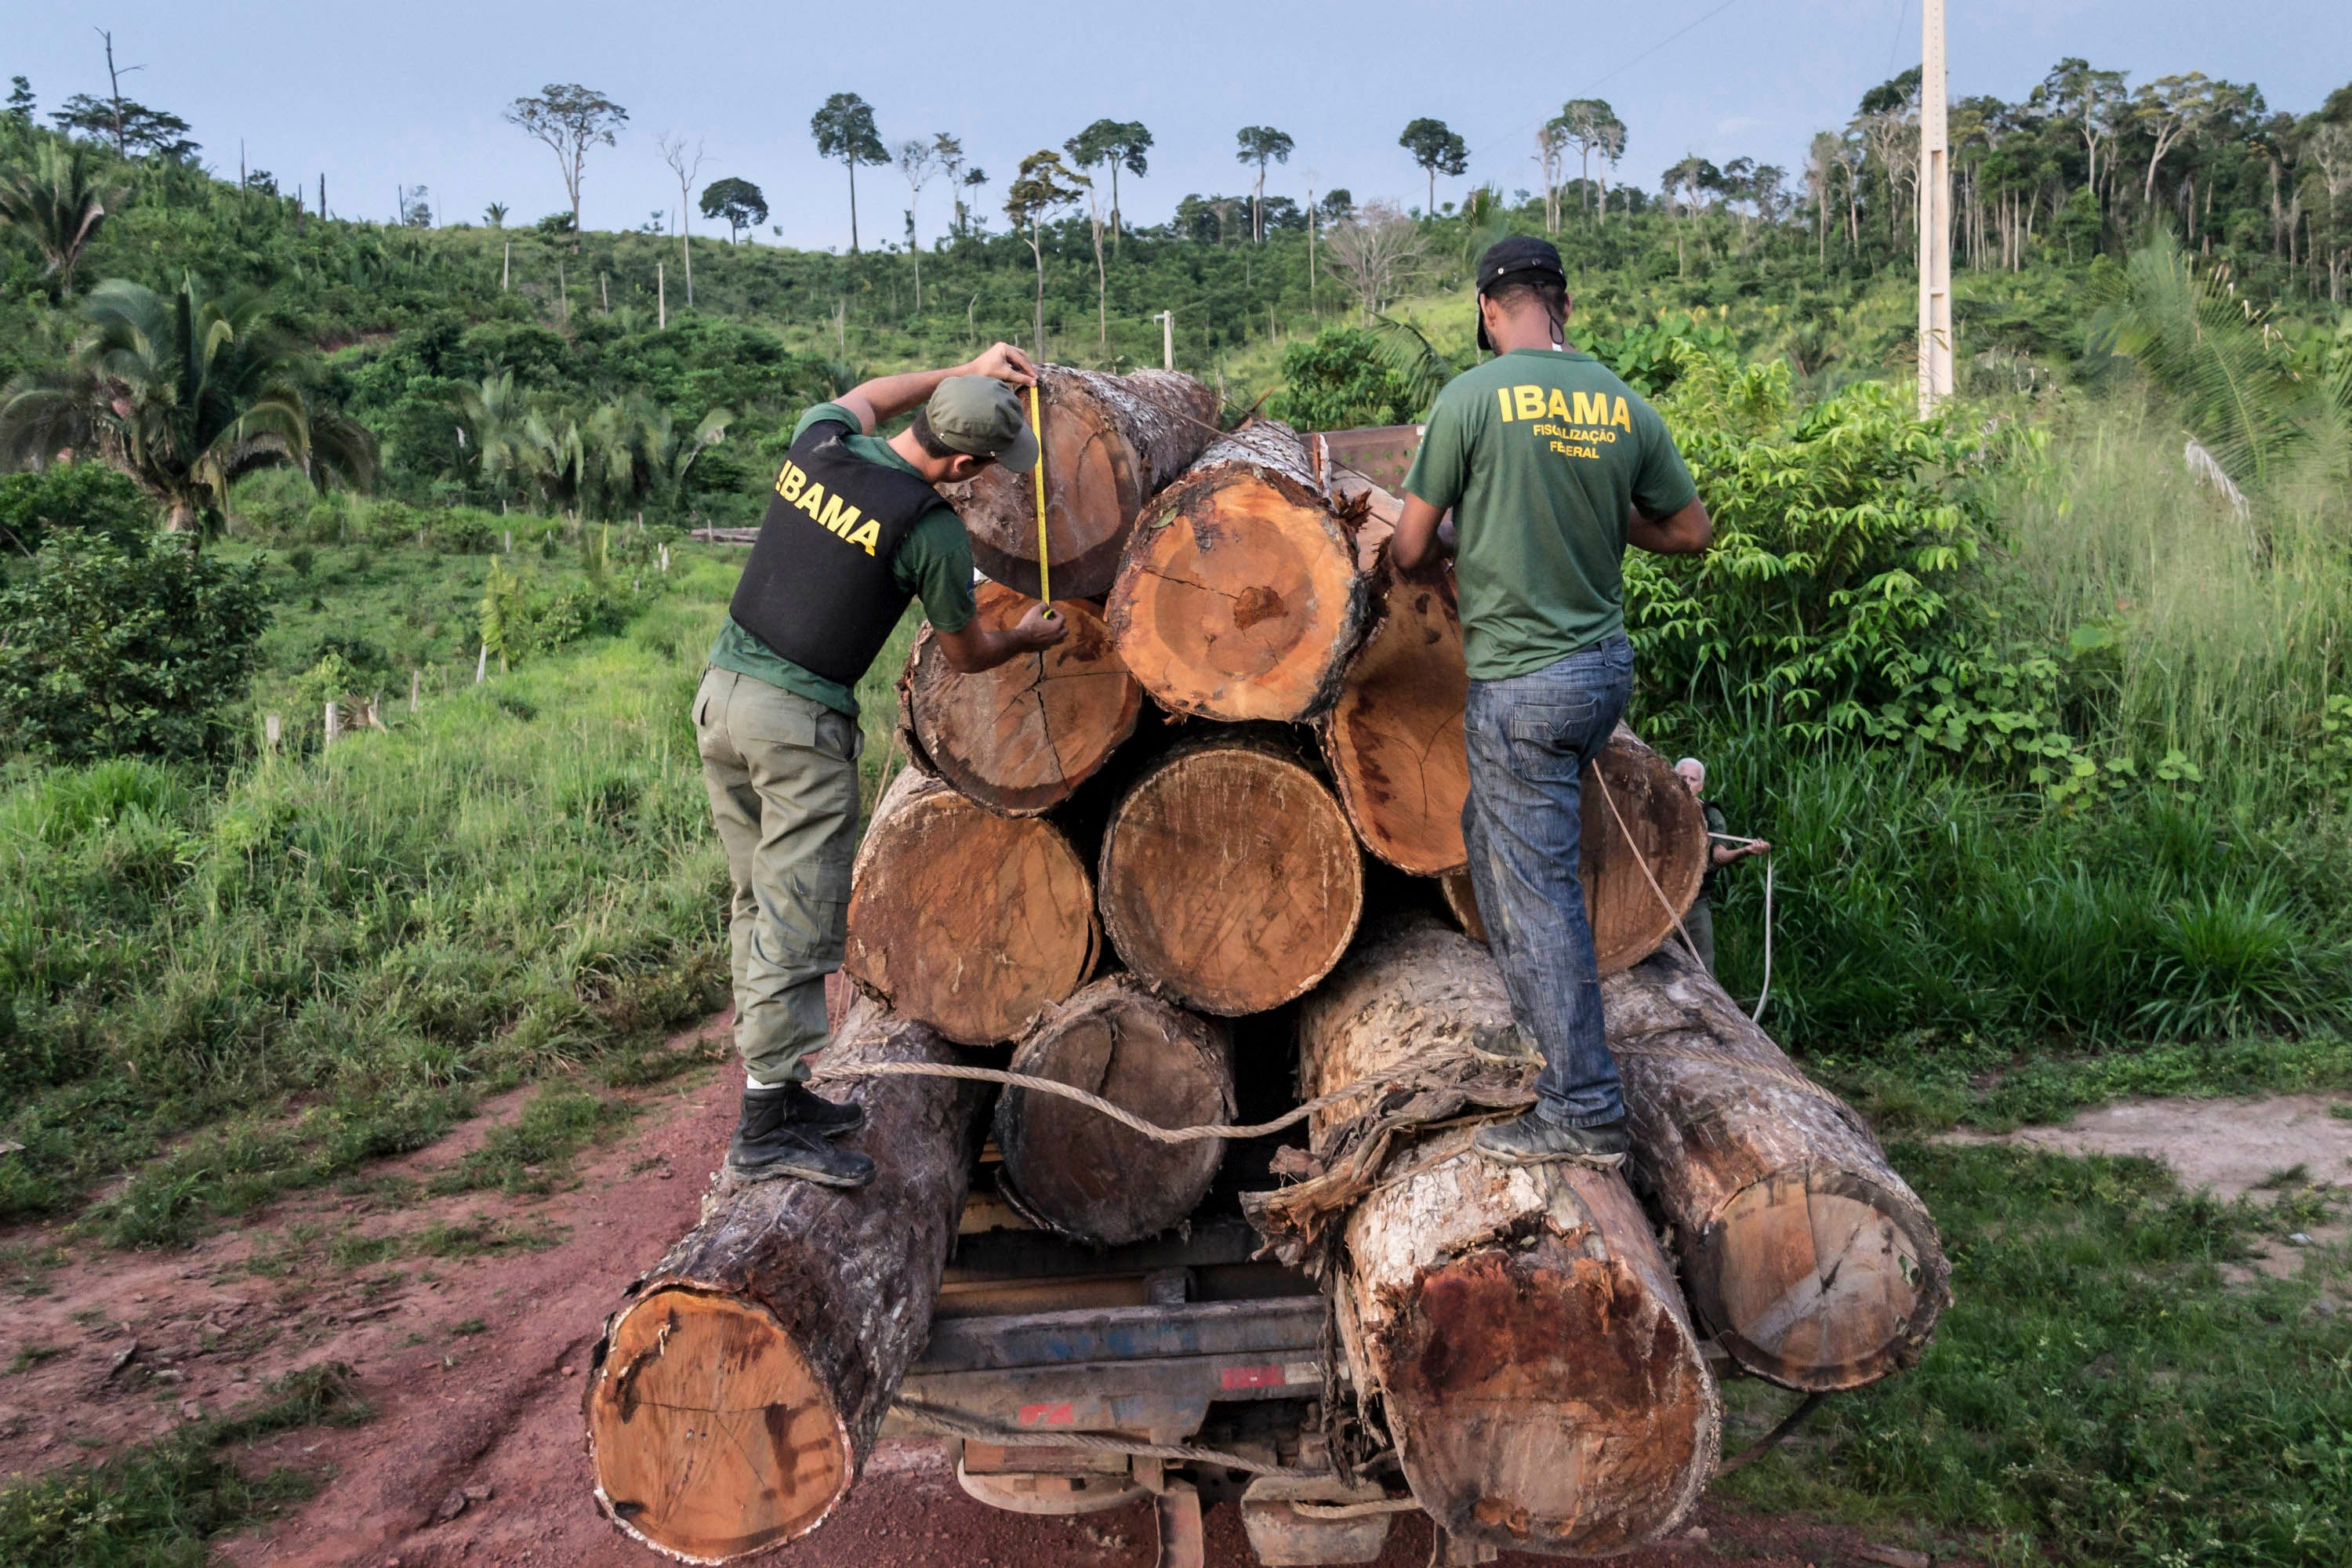 Brazil: Amazon Penalties Suspended Since October | Human Rights Watch